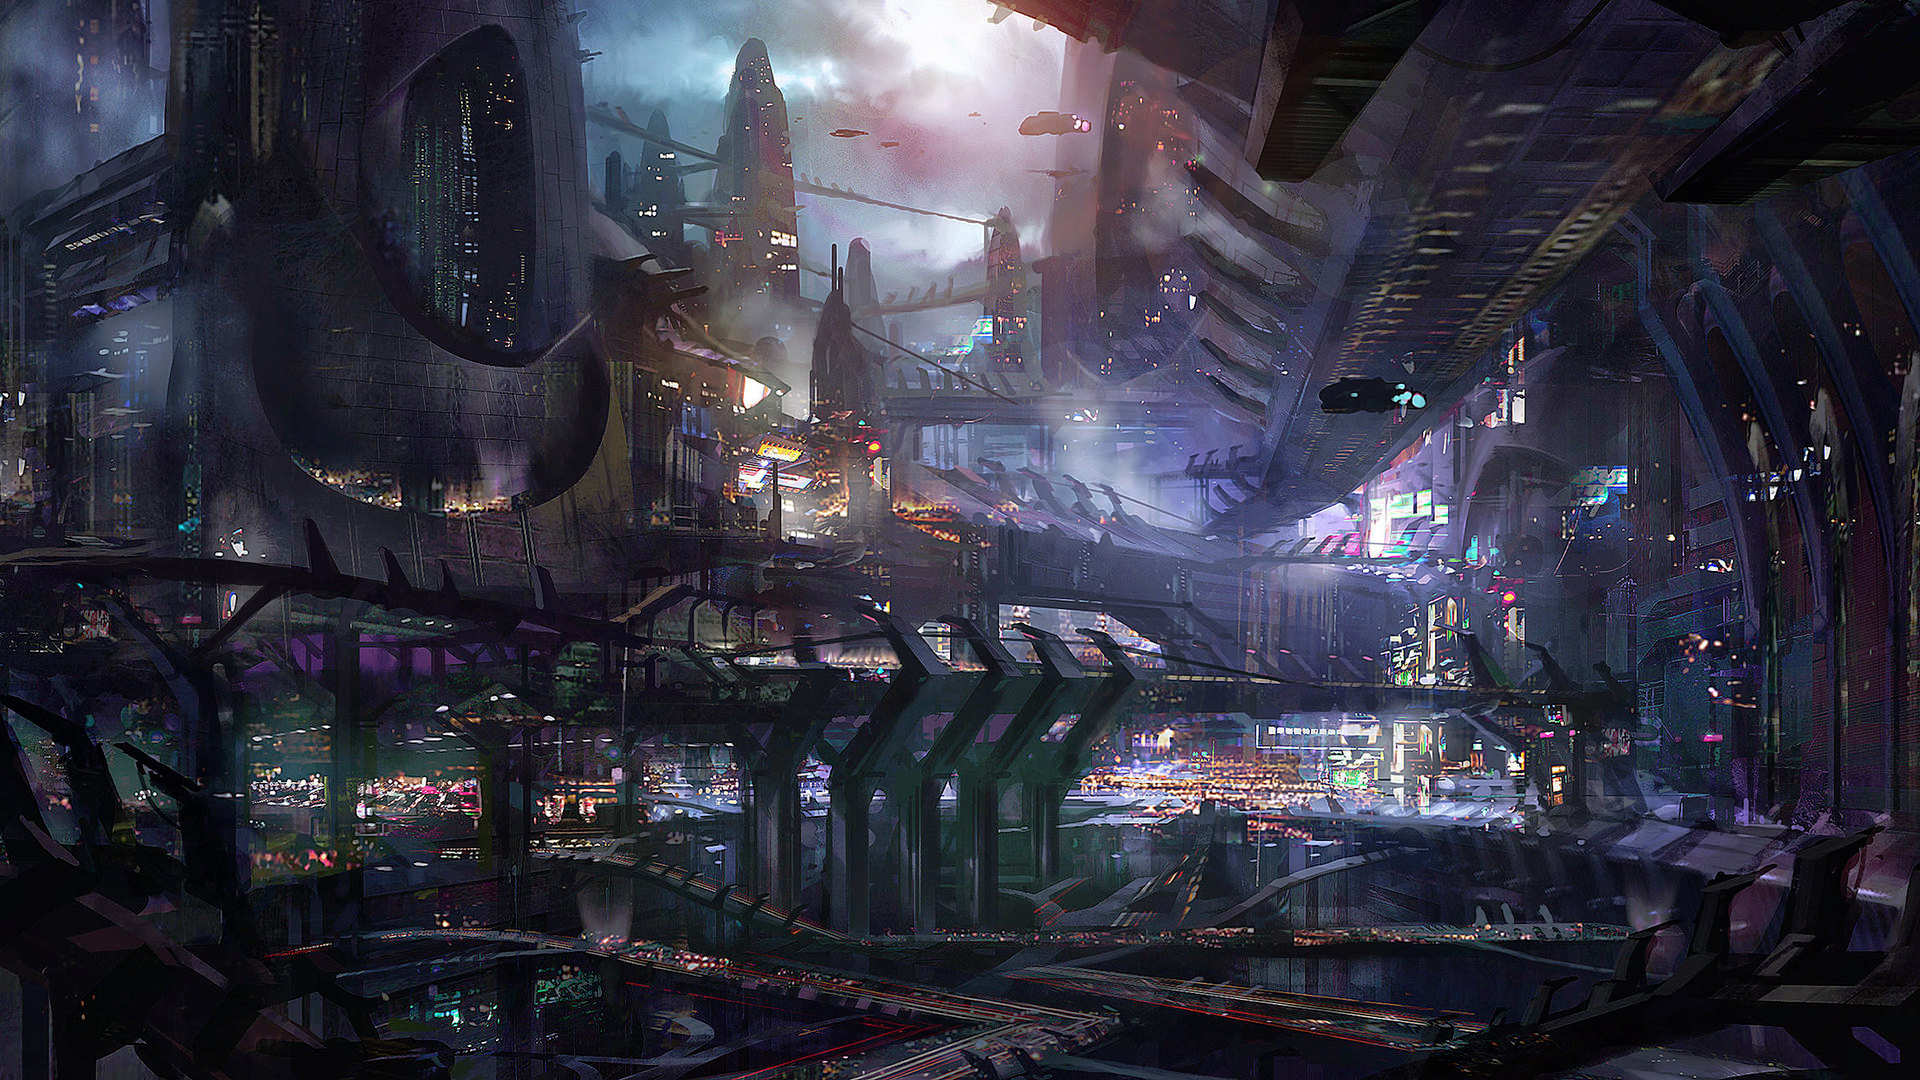 Sci Fi City 1920x1080 (1) - hebus.org - High Definition Wallpapers ...